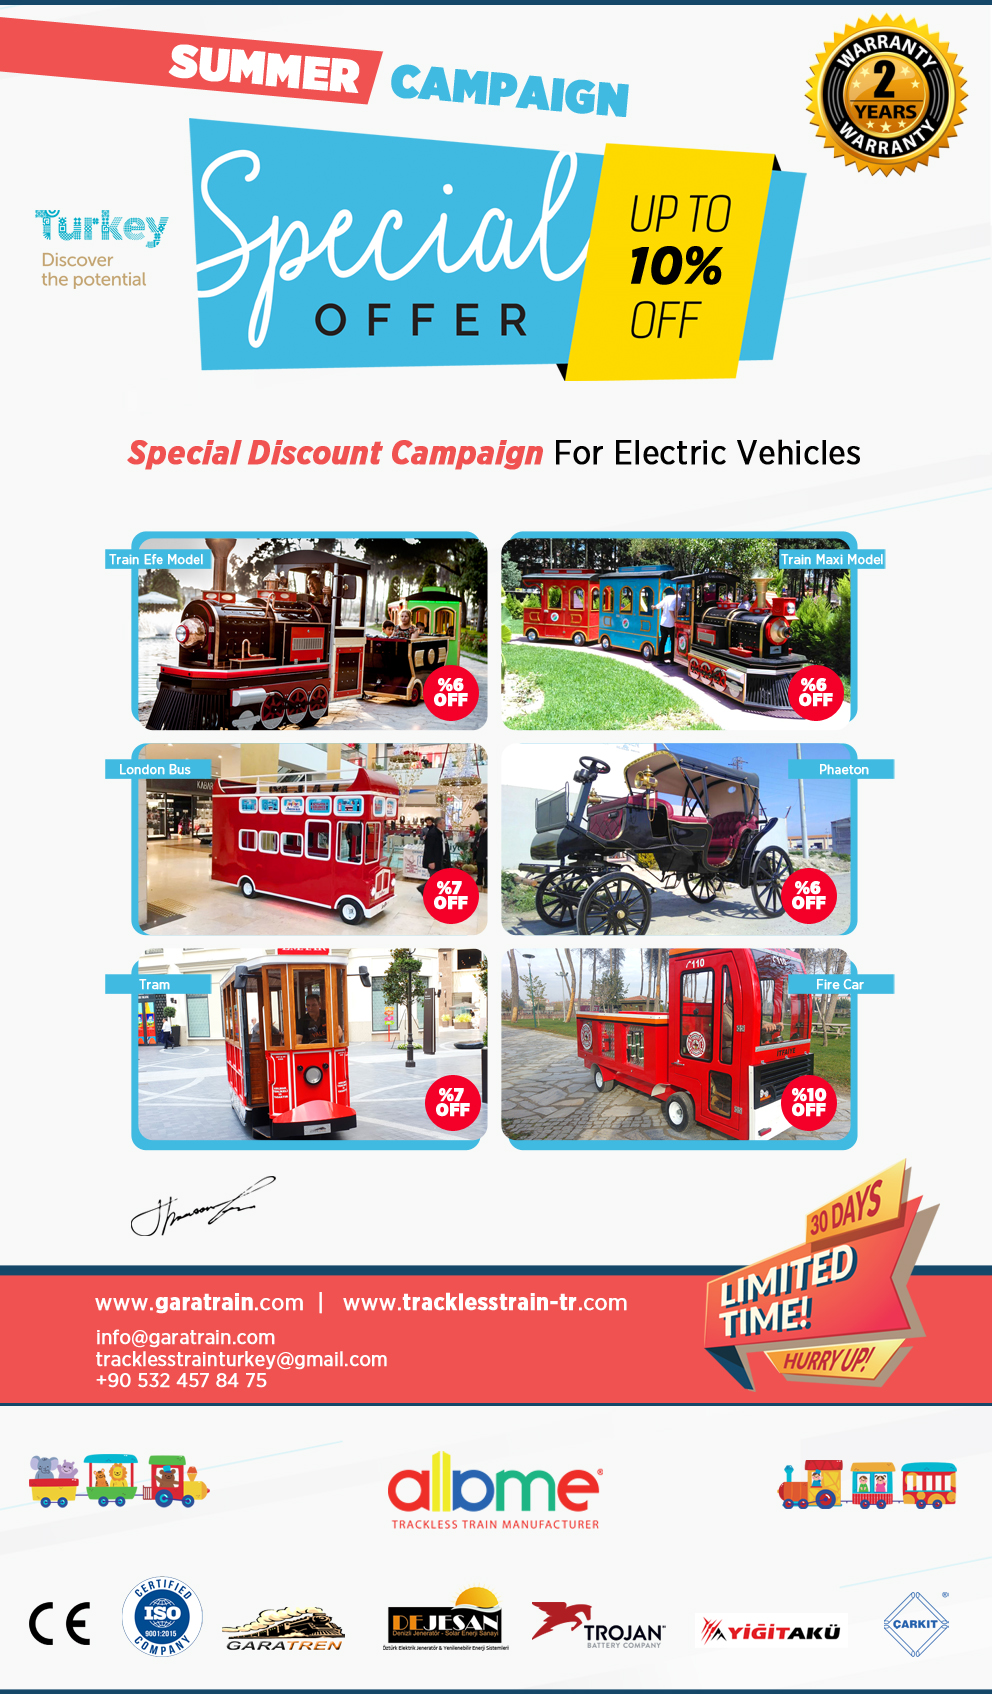 summer campaign trackless train